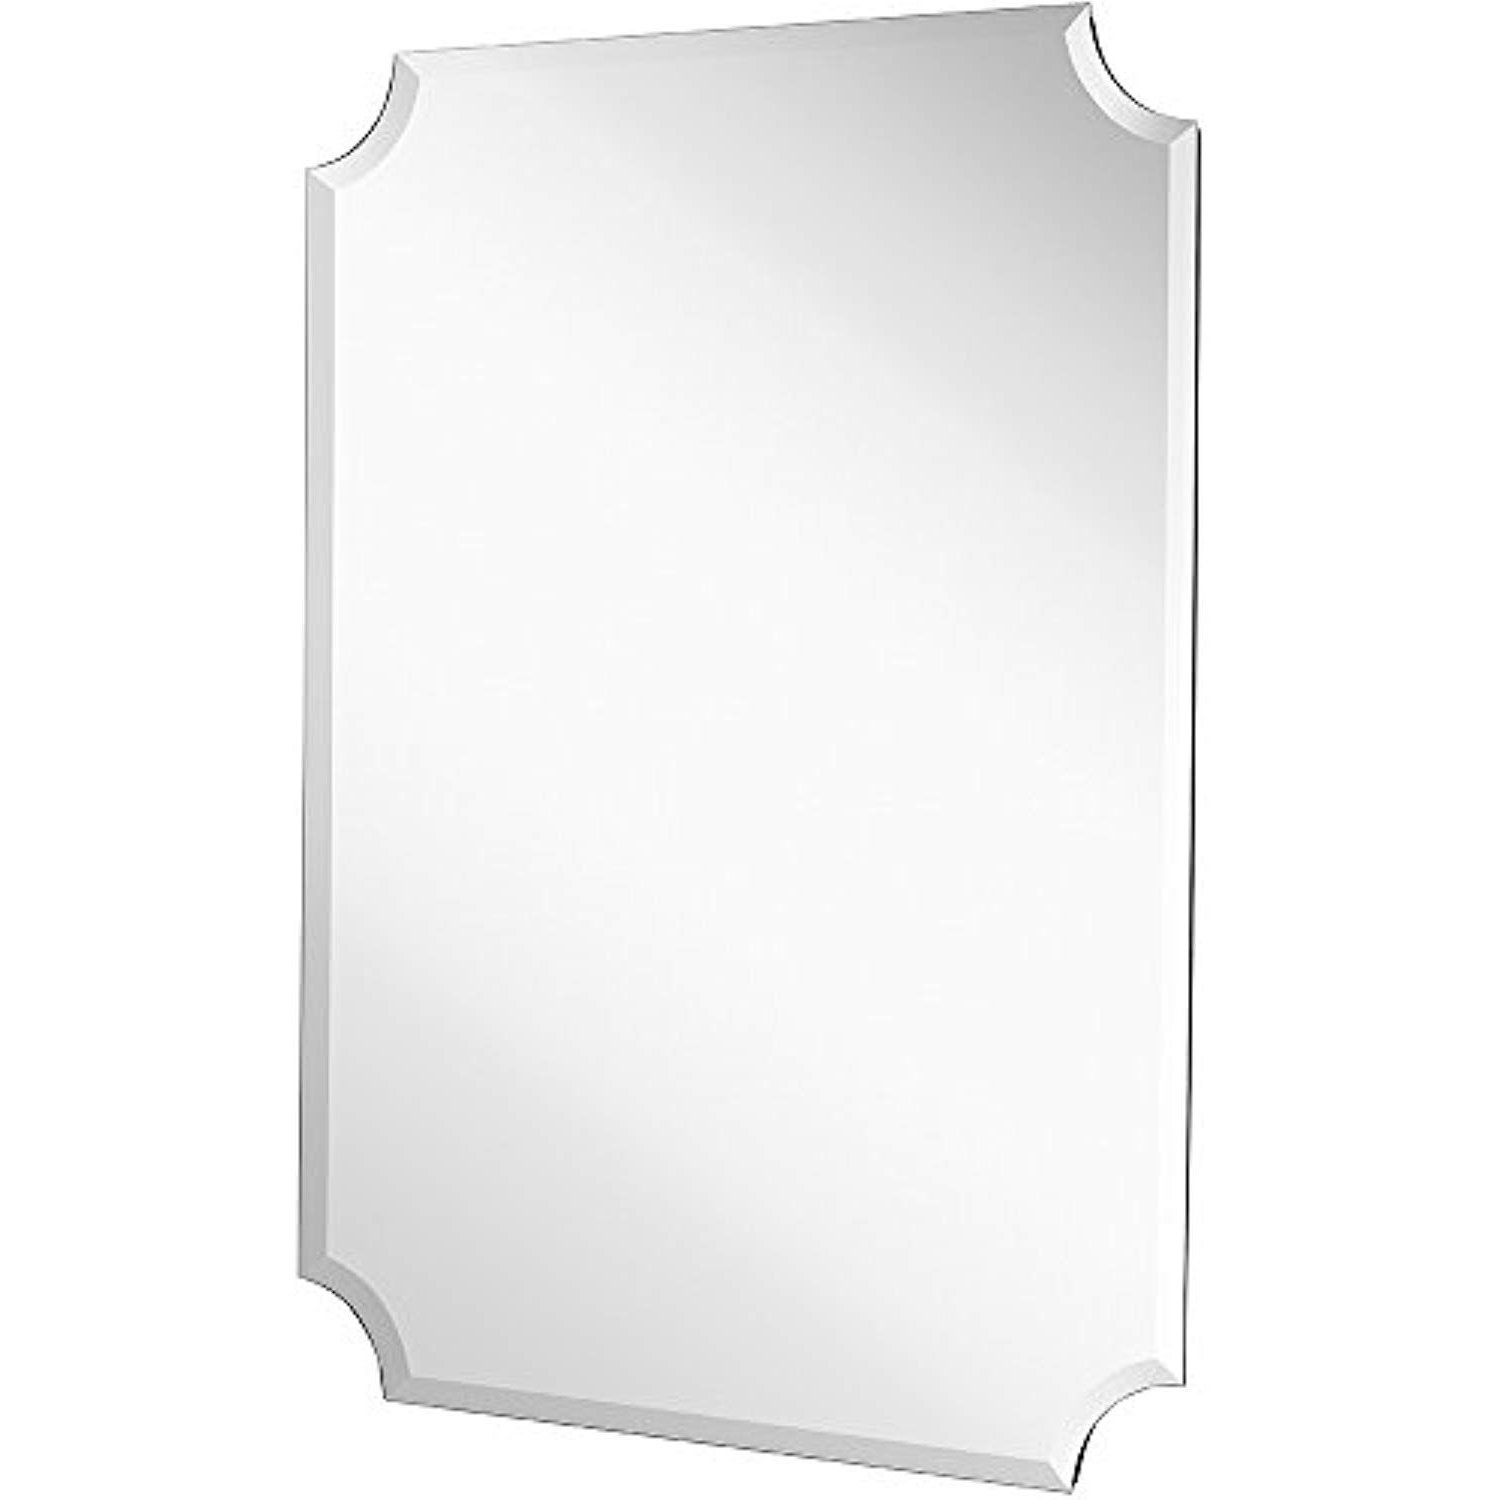 Dariel Tall Arched Scalloped Wall Mirrors Within Most Recent Large Beveled Scalloped Edge Rectangular Wall Mirror (View 11 of 20)